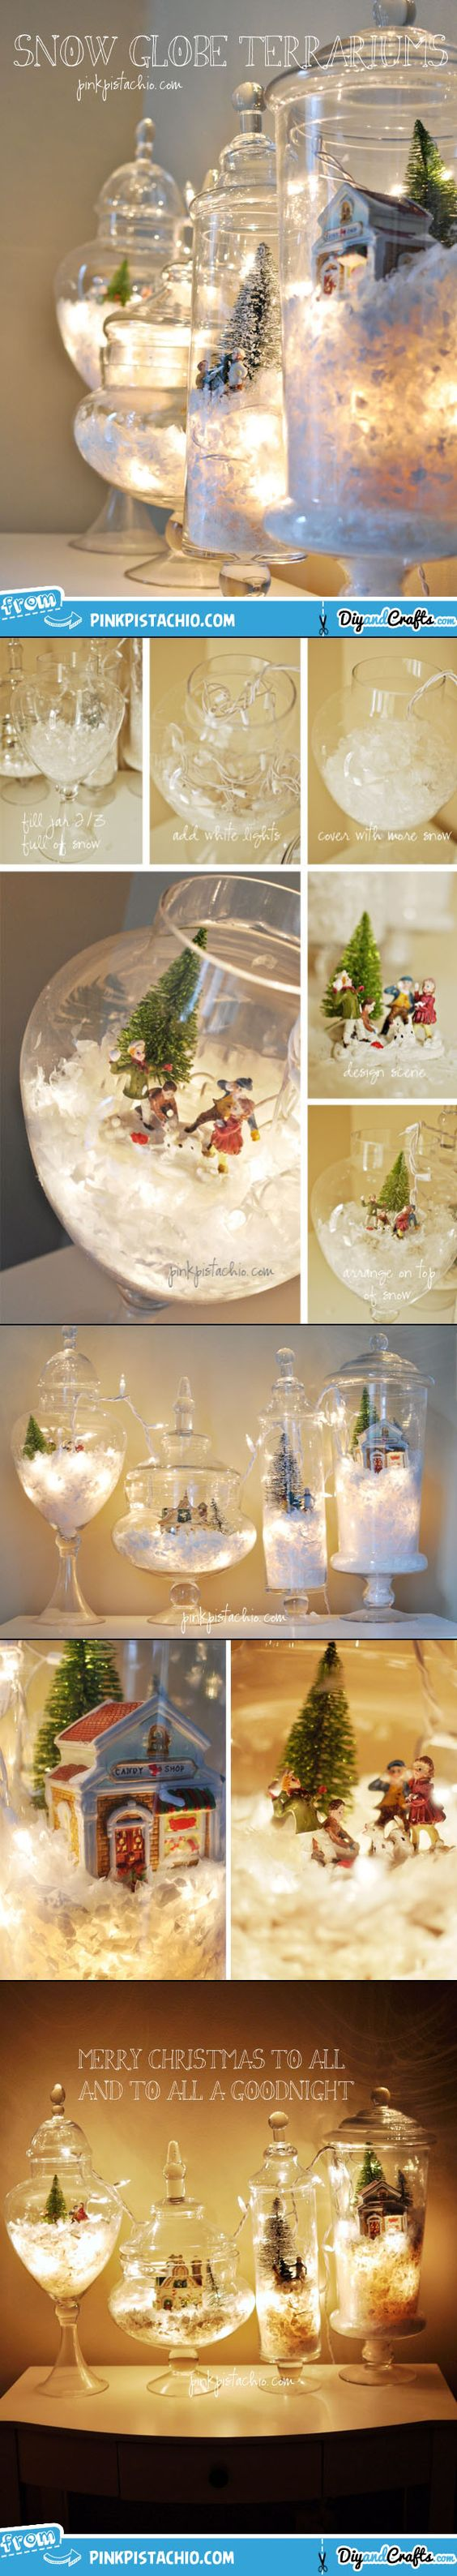 snow-globe-terrariums via